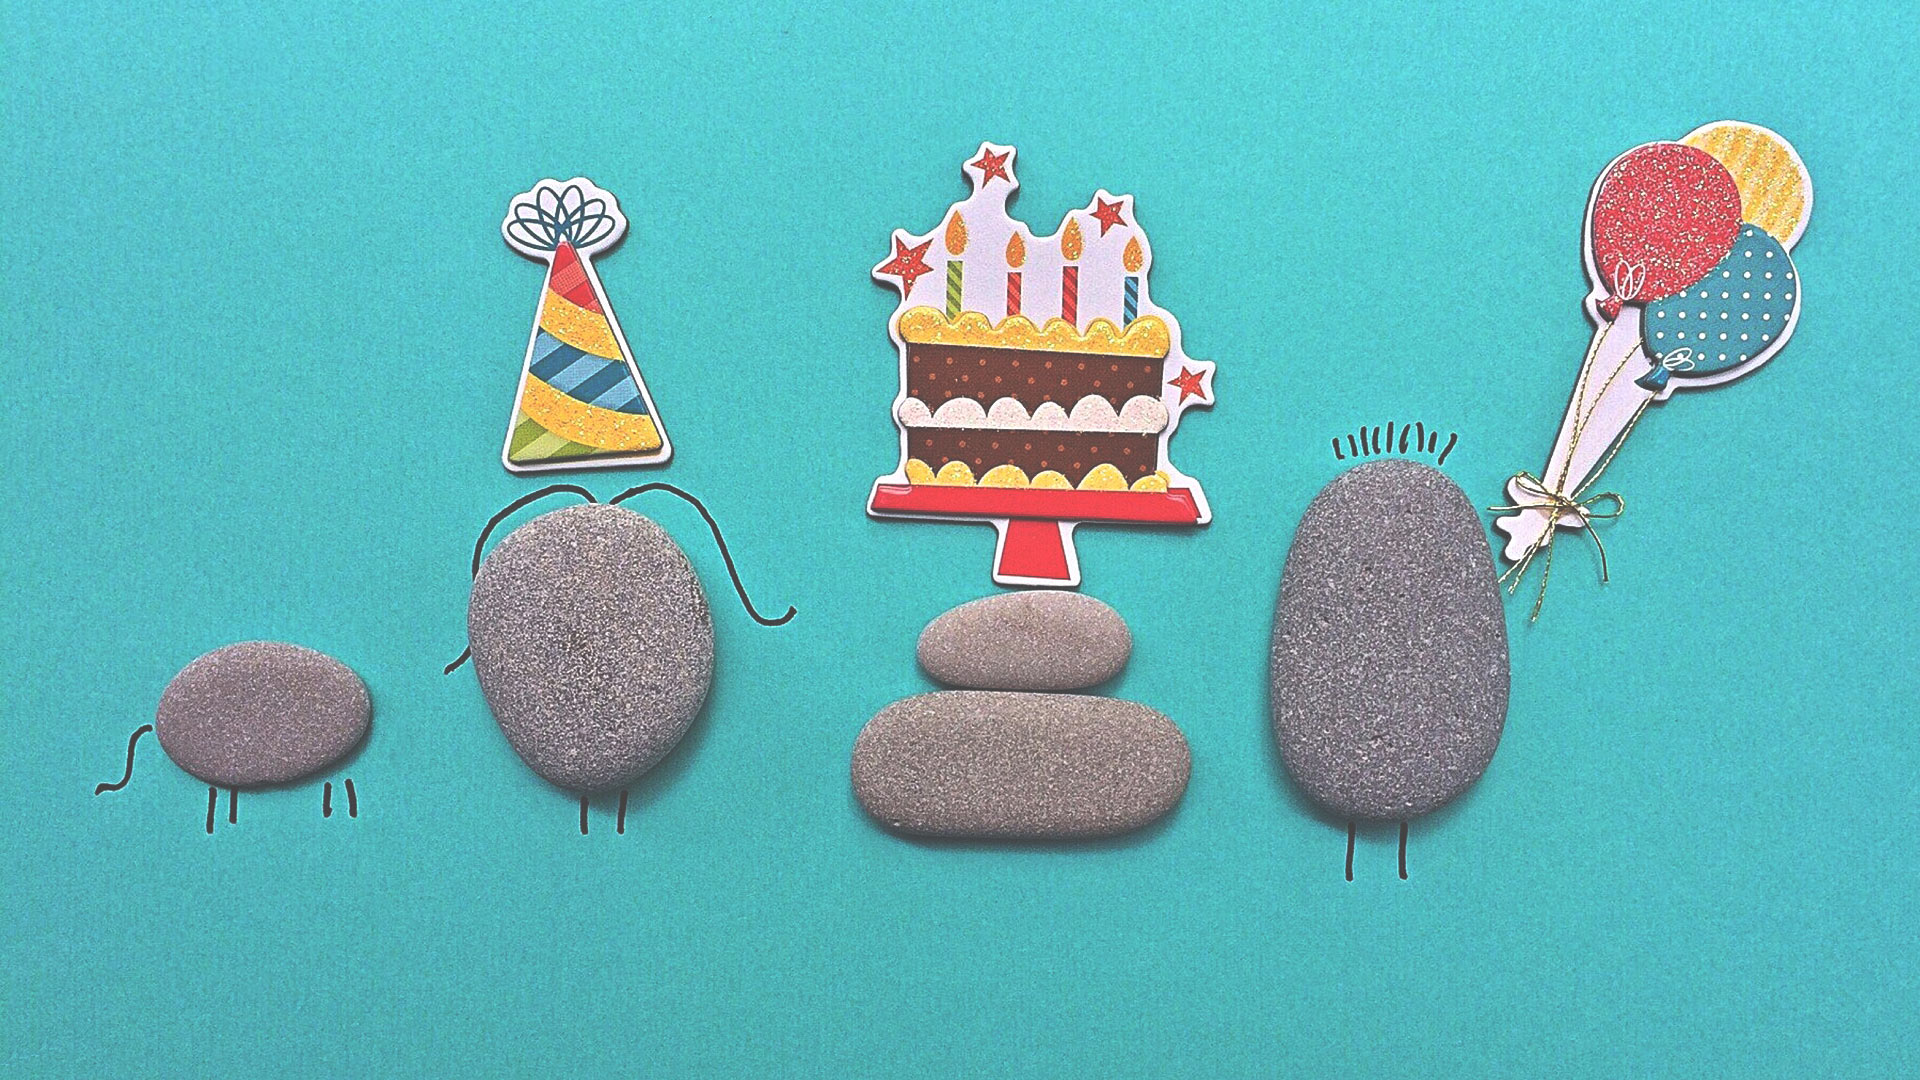 Stones standing in as people celebrating a birthday party